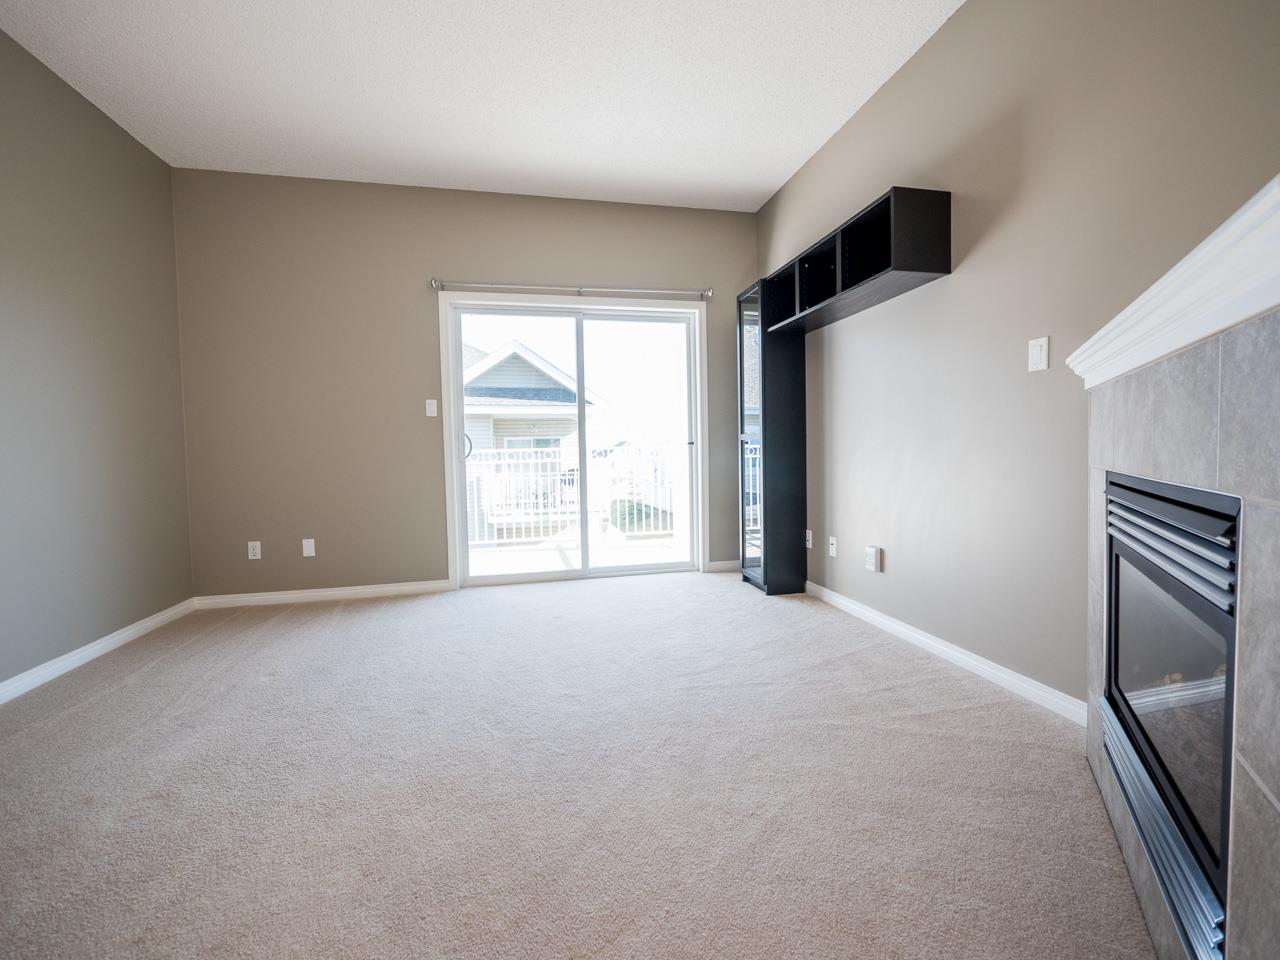 Photo 9: 71 3040 SPENCE Way in Edmonton: Zone 53 Townhouse for sale : MLS(r) # E4063695